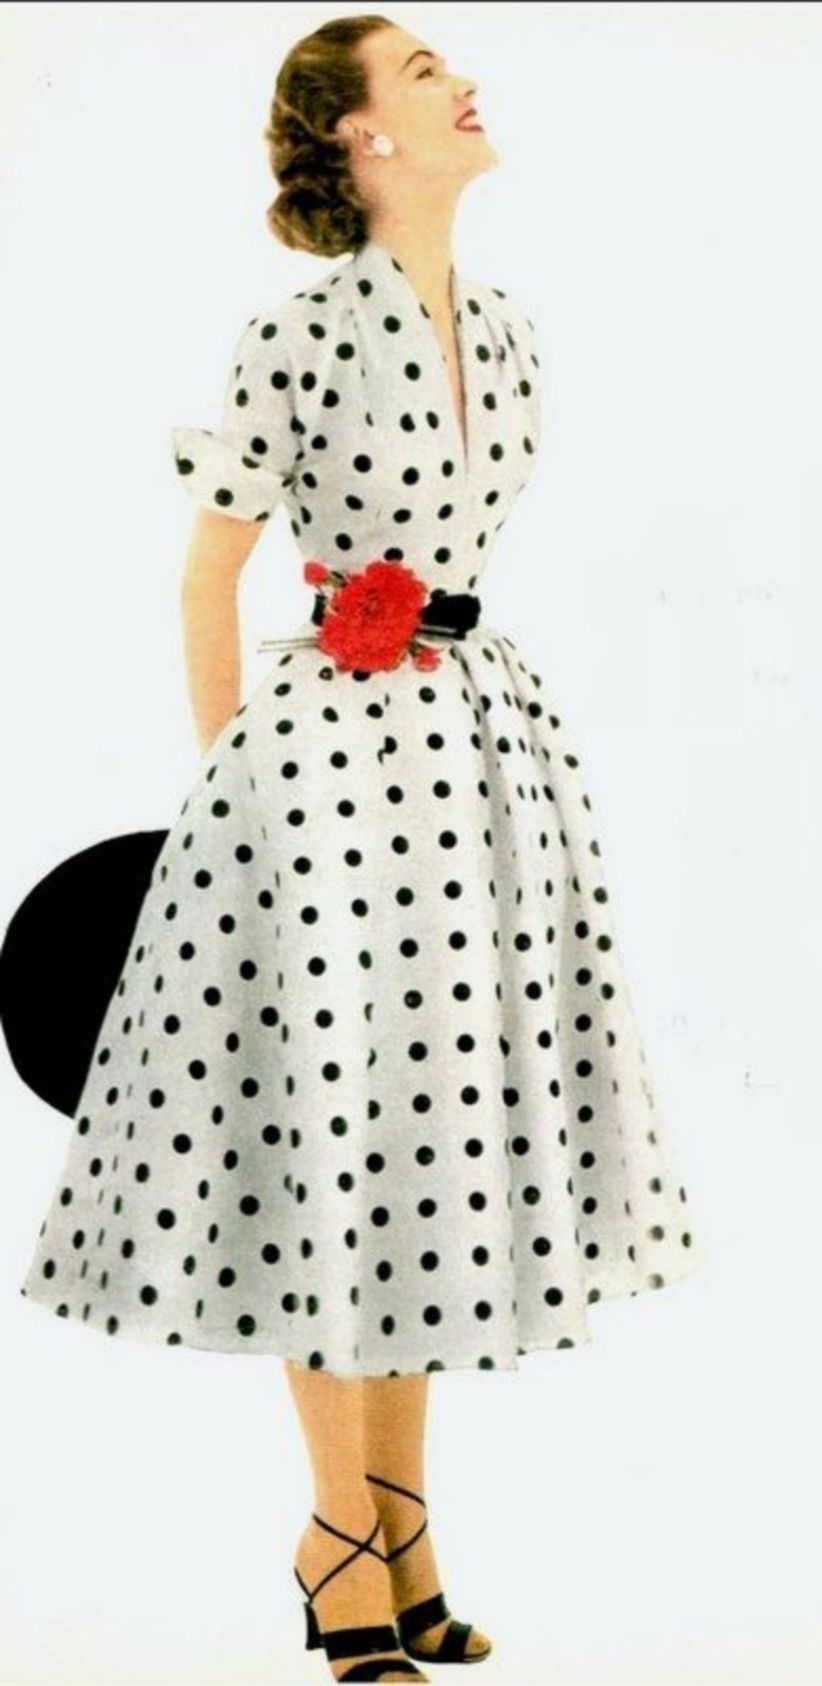 b5622d196 Amazing 48 Ways to Wear Cute Outfit with Polka Dot Dress https   vialaven